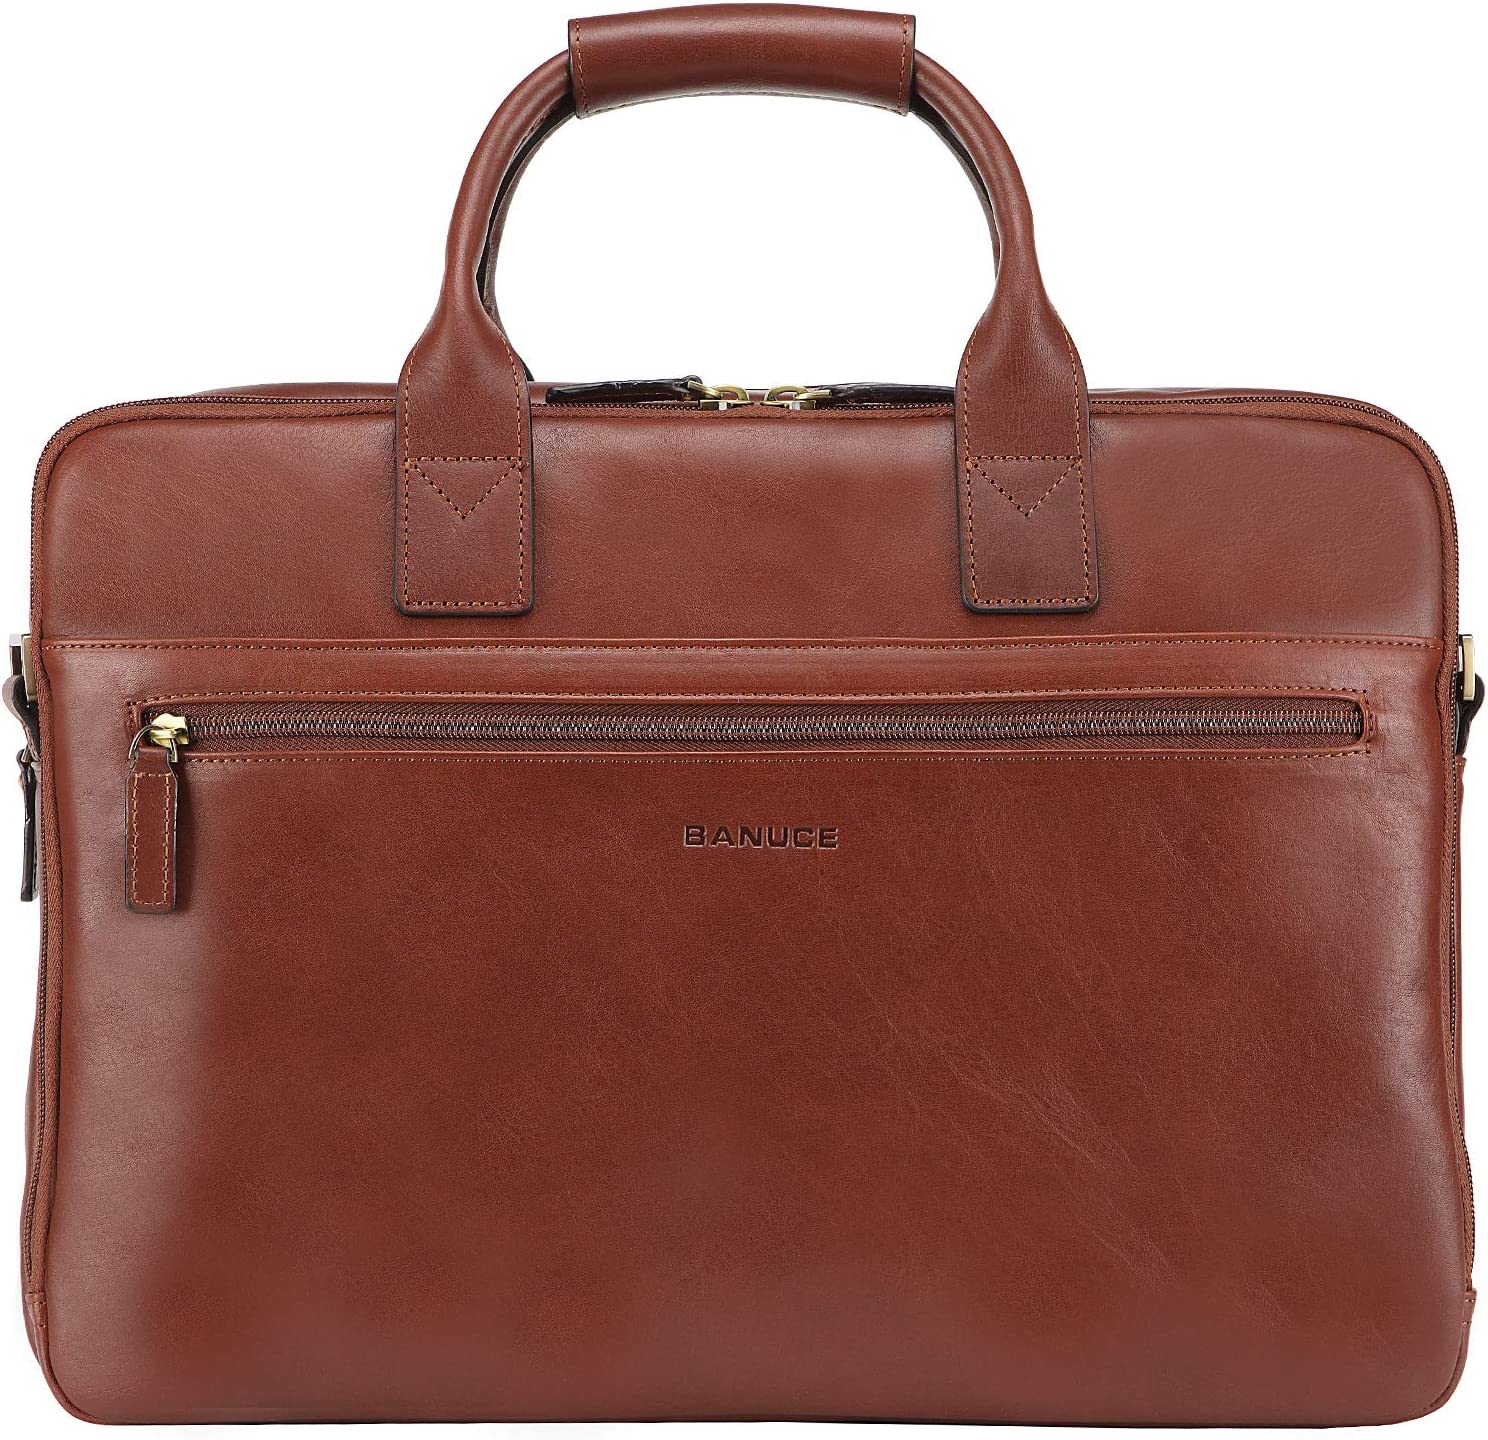 Banuce Vintage Full Grains Italian Leather Handbag for Women Briefcase a4 Business Bag Tote Attache Case 13 Inch Laptop Case Ladies Large Capacity Handle Purse